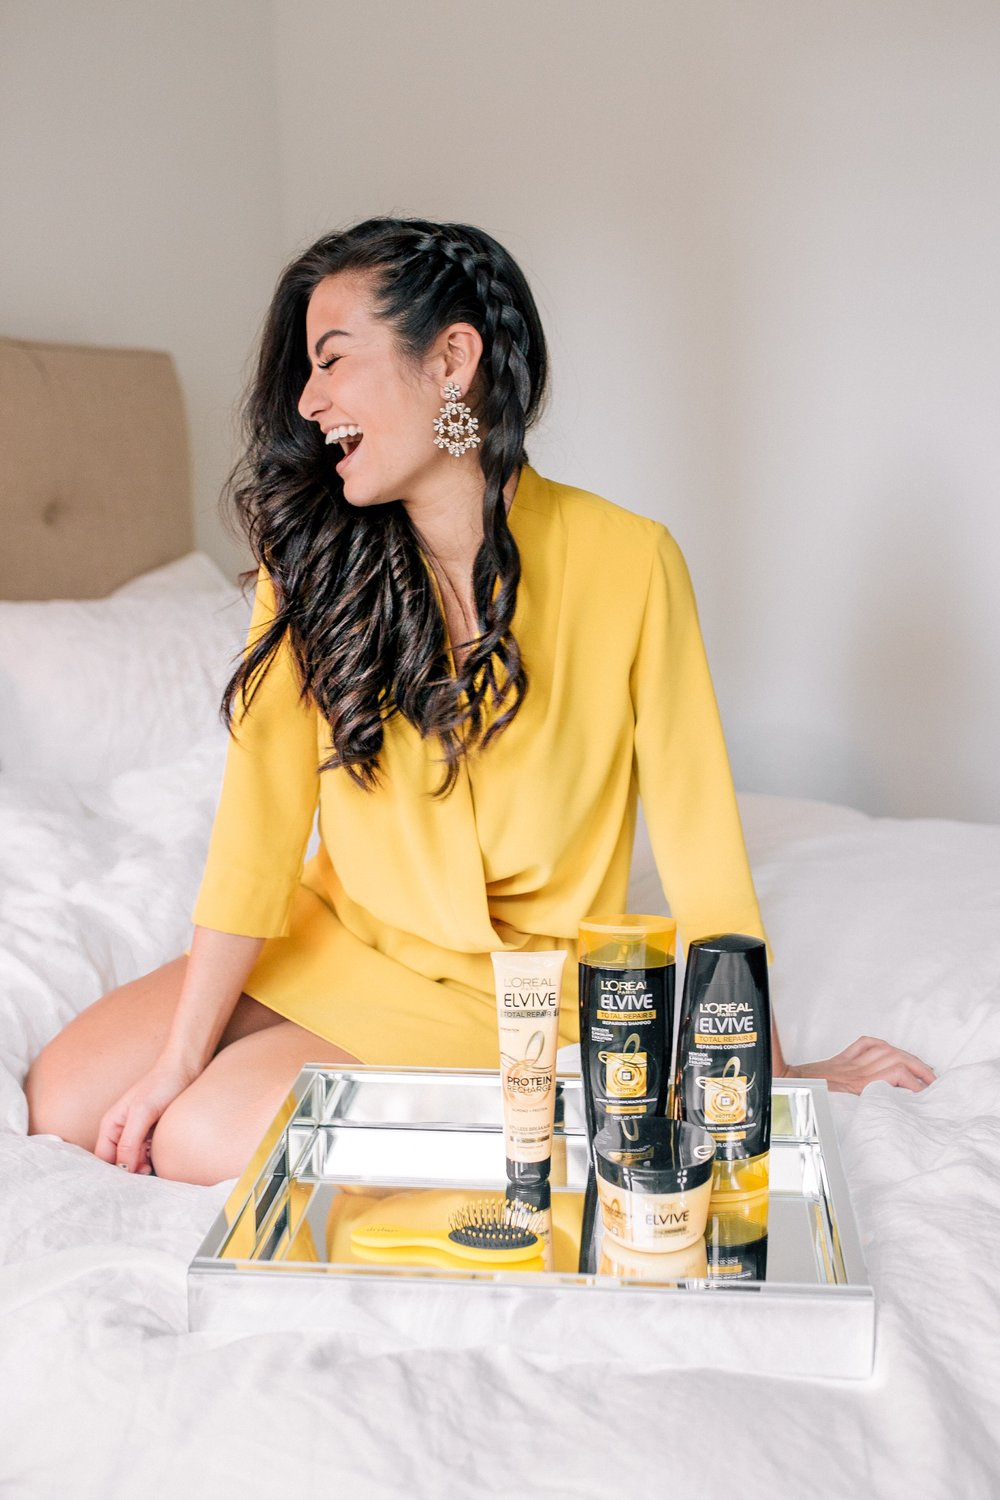 The Bachelor Caila Quinn Hair L'Oreal Elvive Shampoo and Conditioner